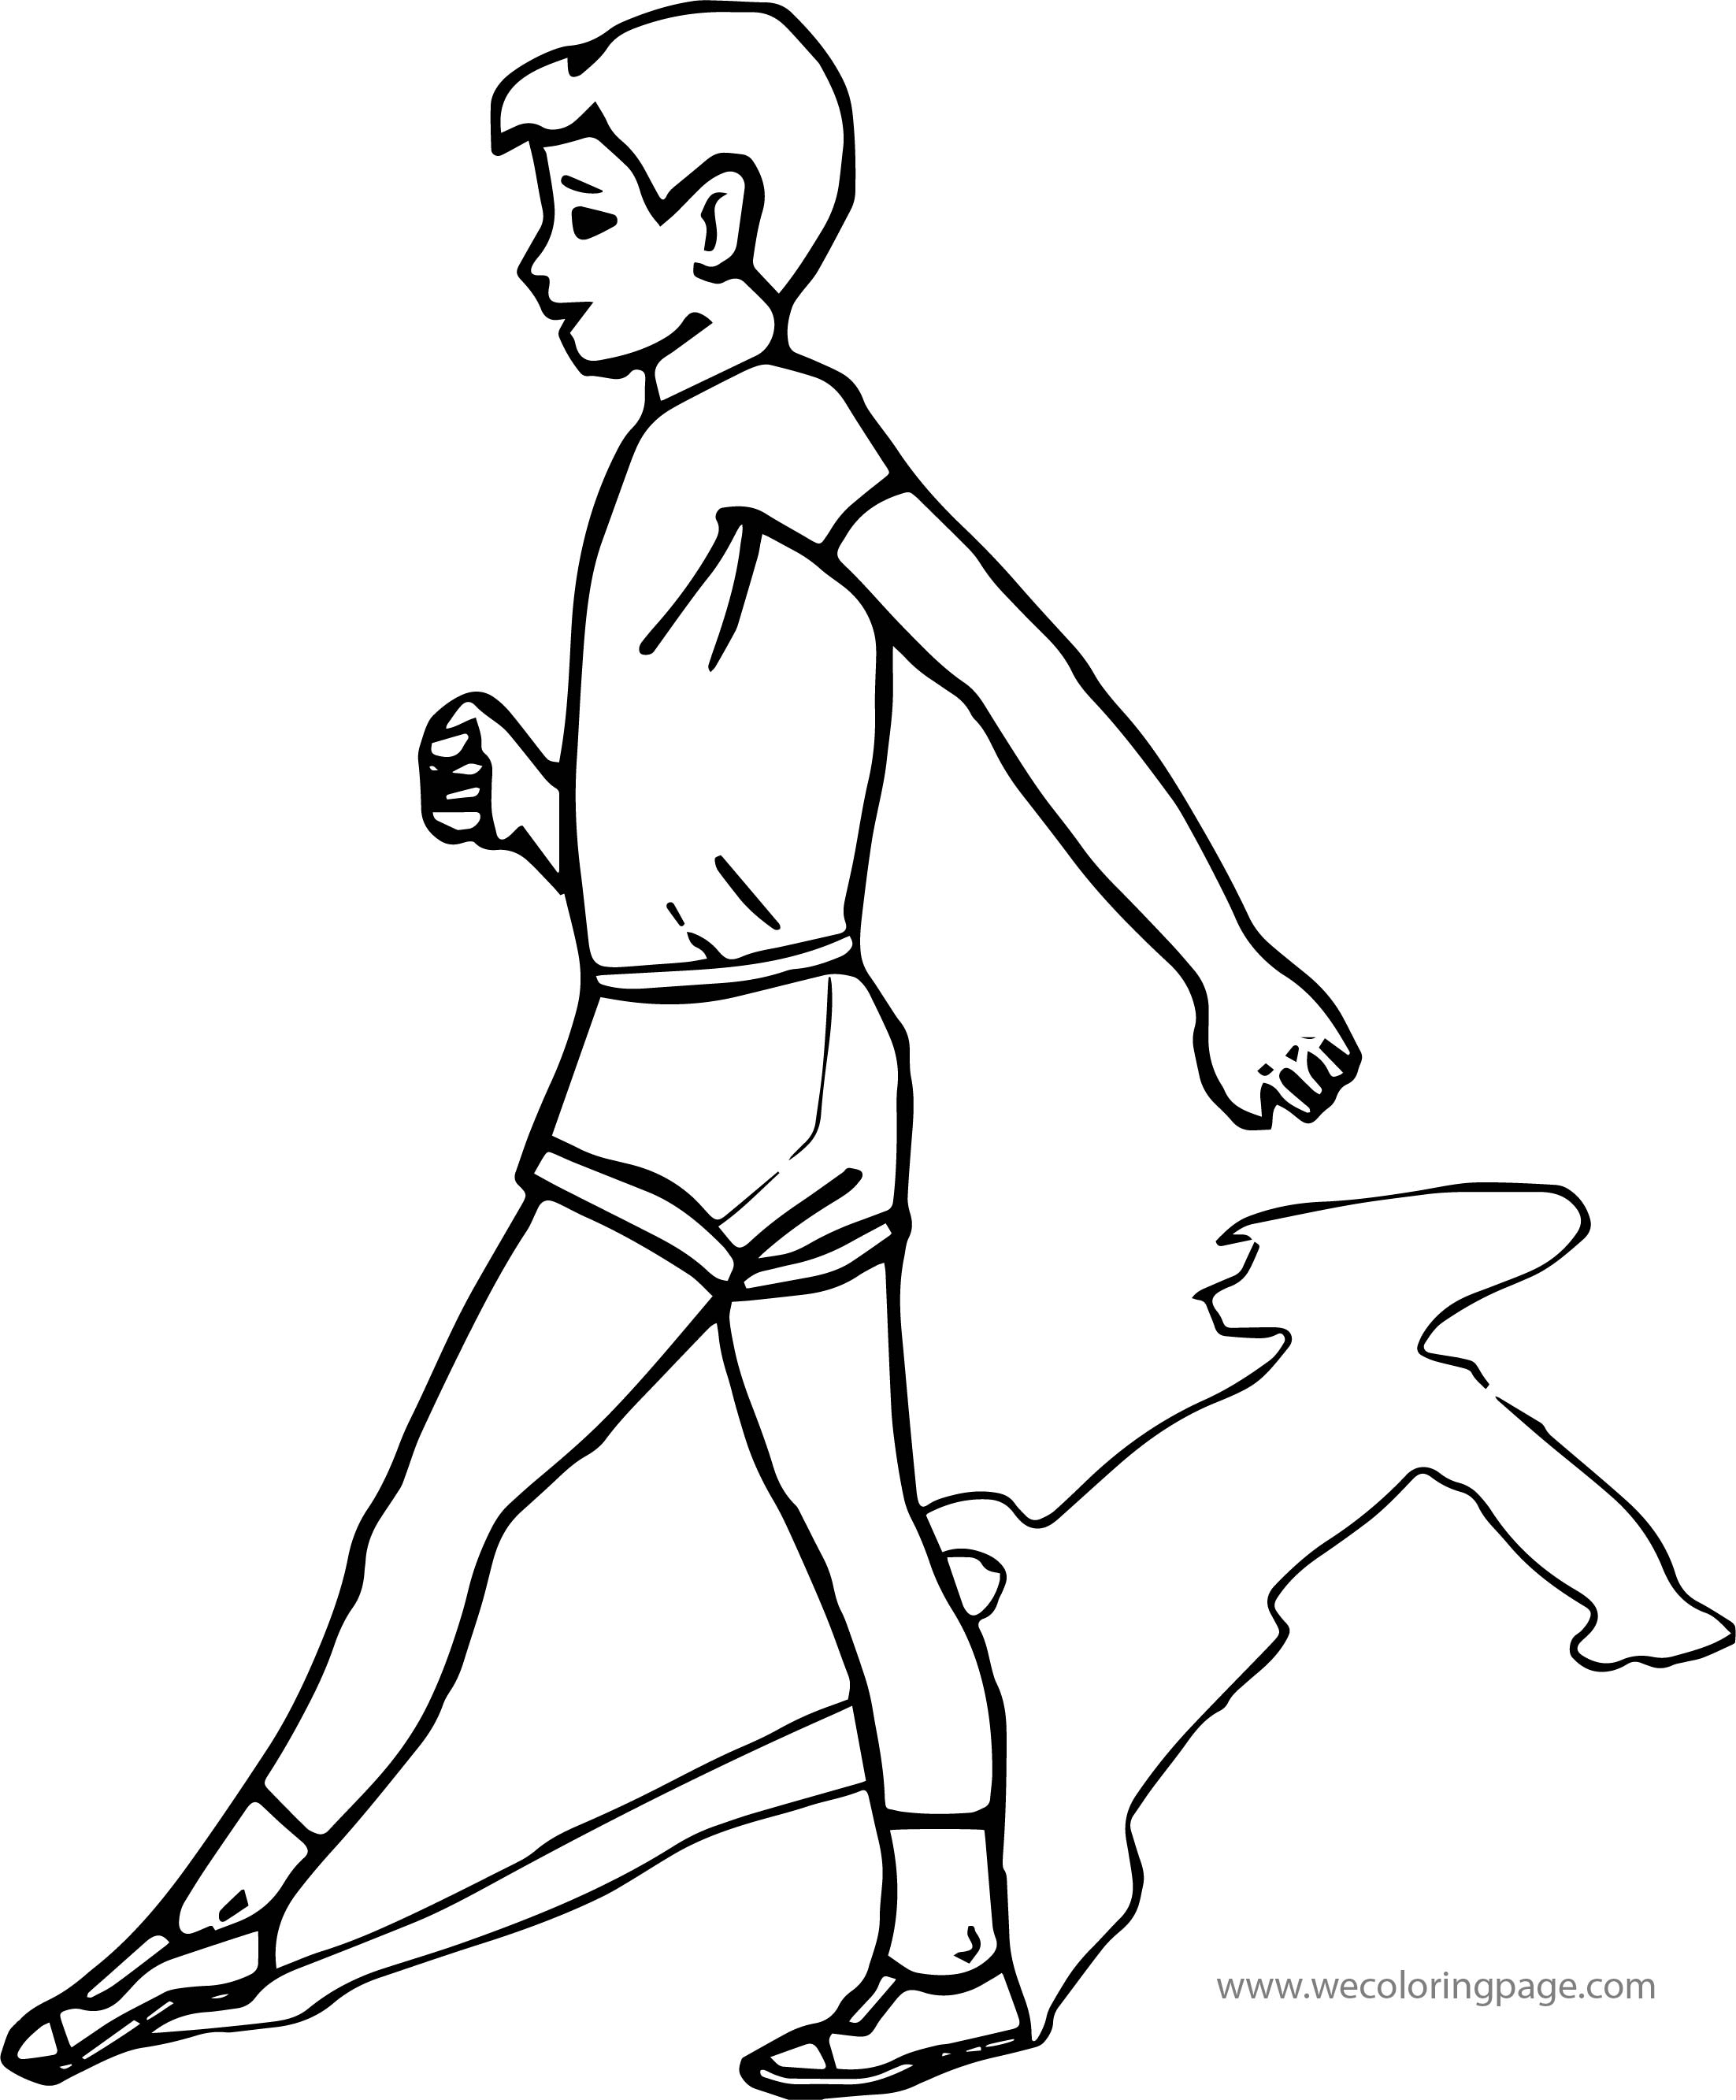 To Boy Coloring Page